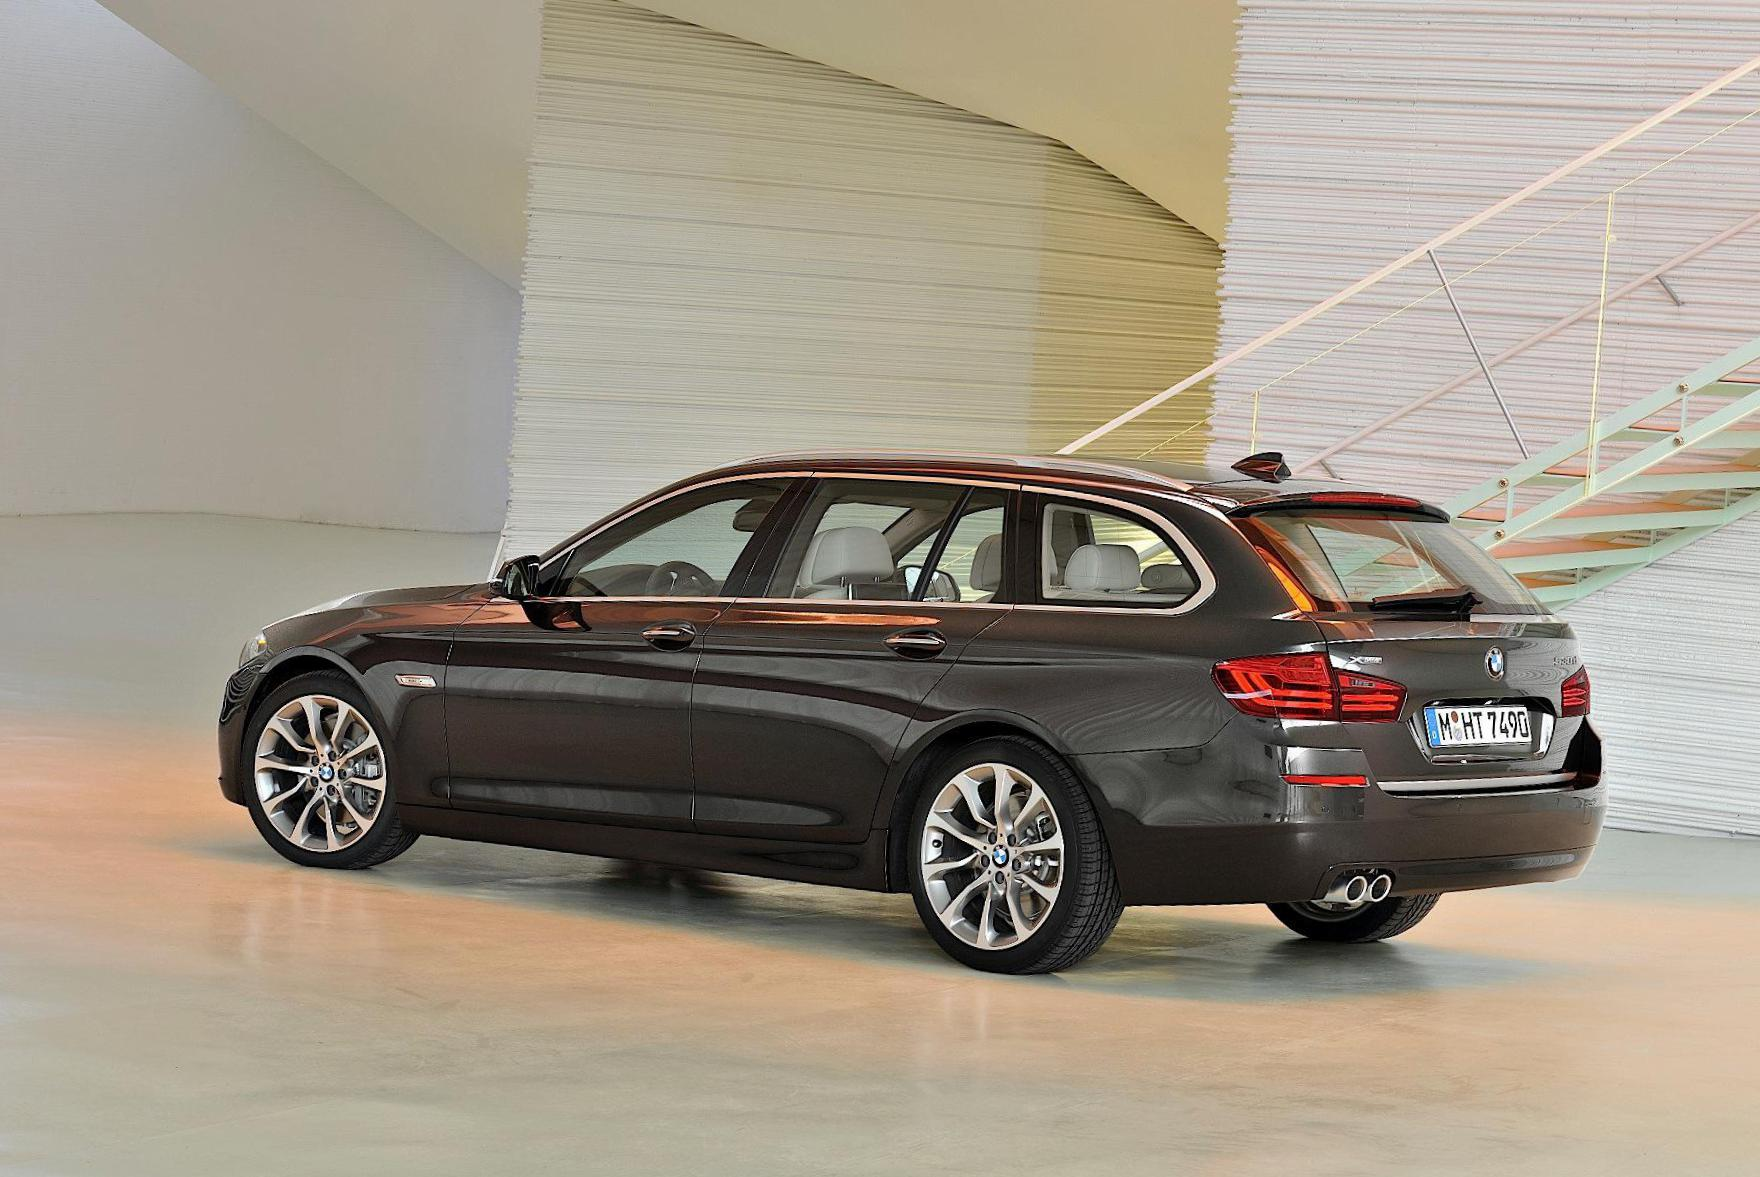 5 Series Touring (F11) BMW auto sedan